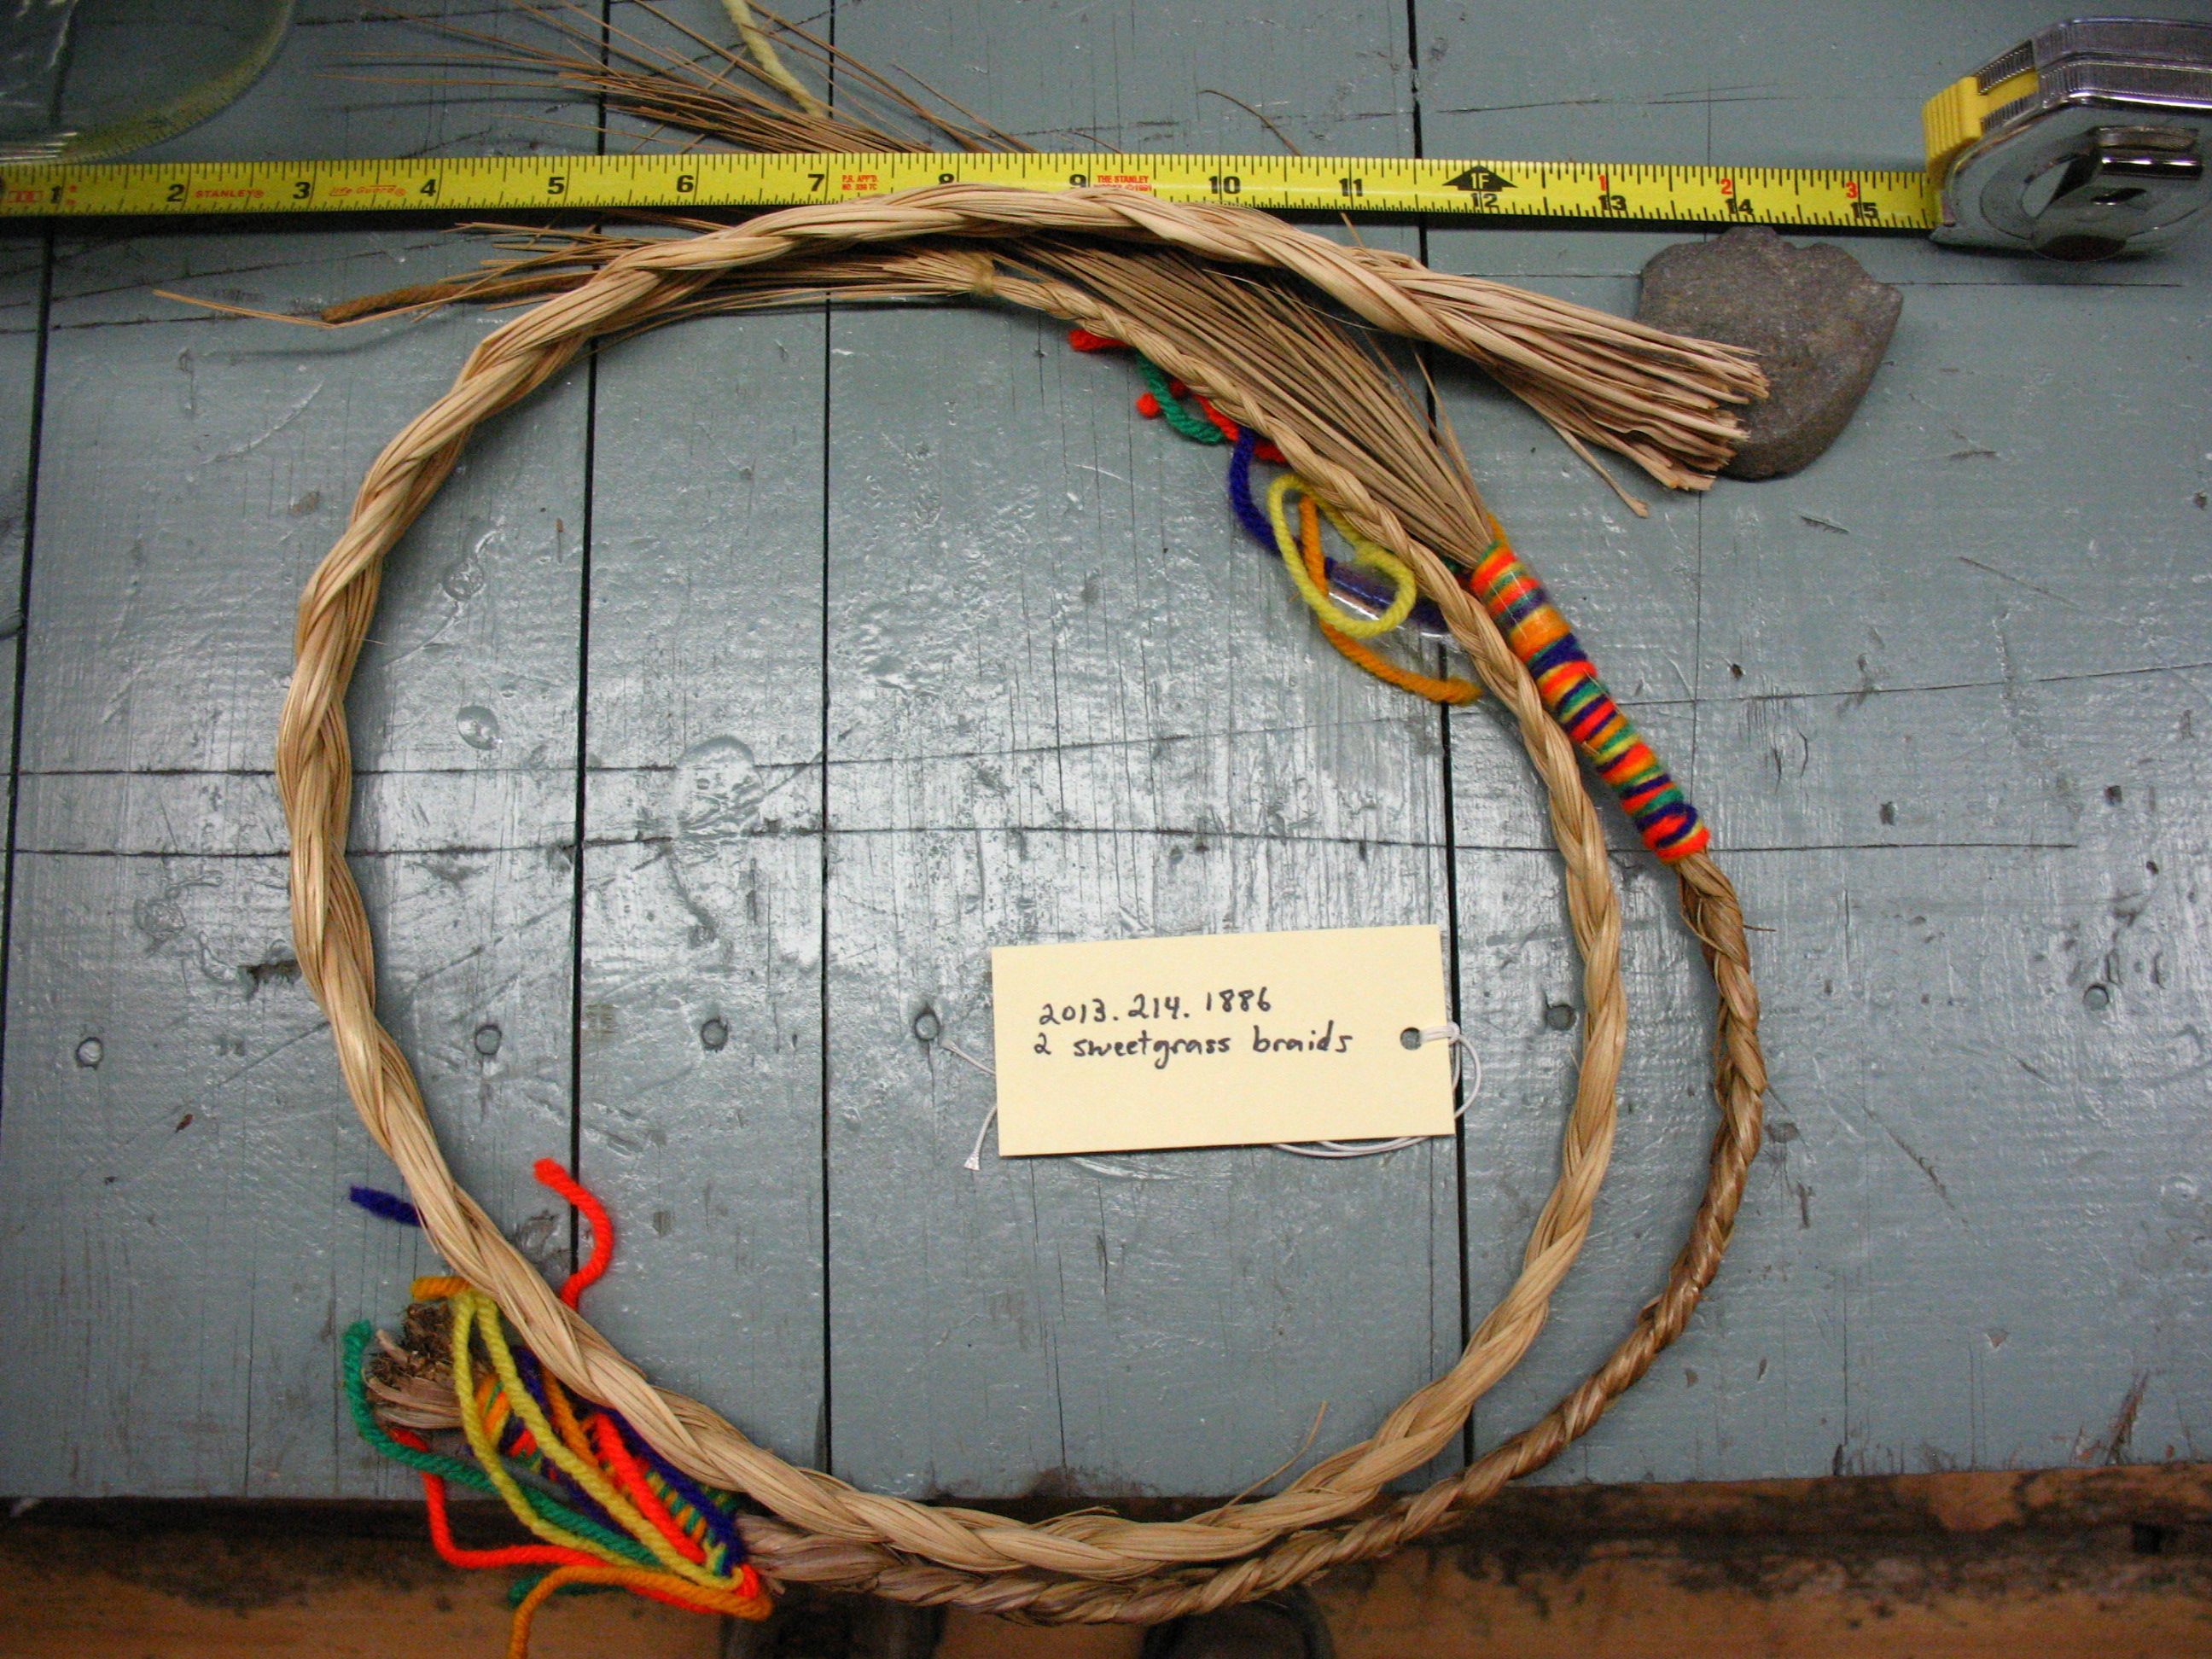 Native American crafted sweetgrass braids